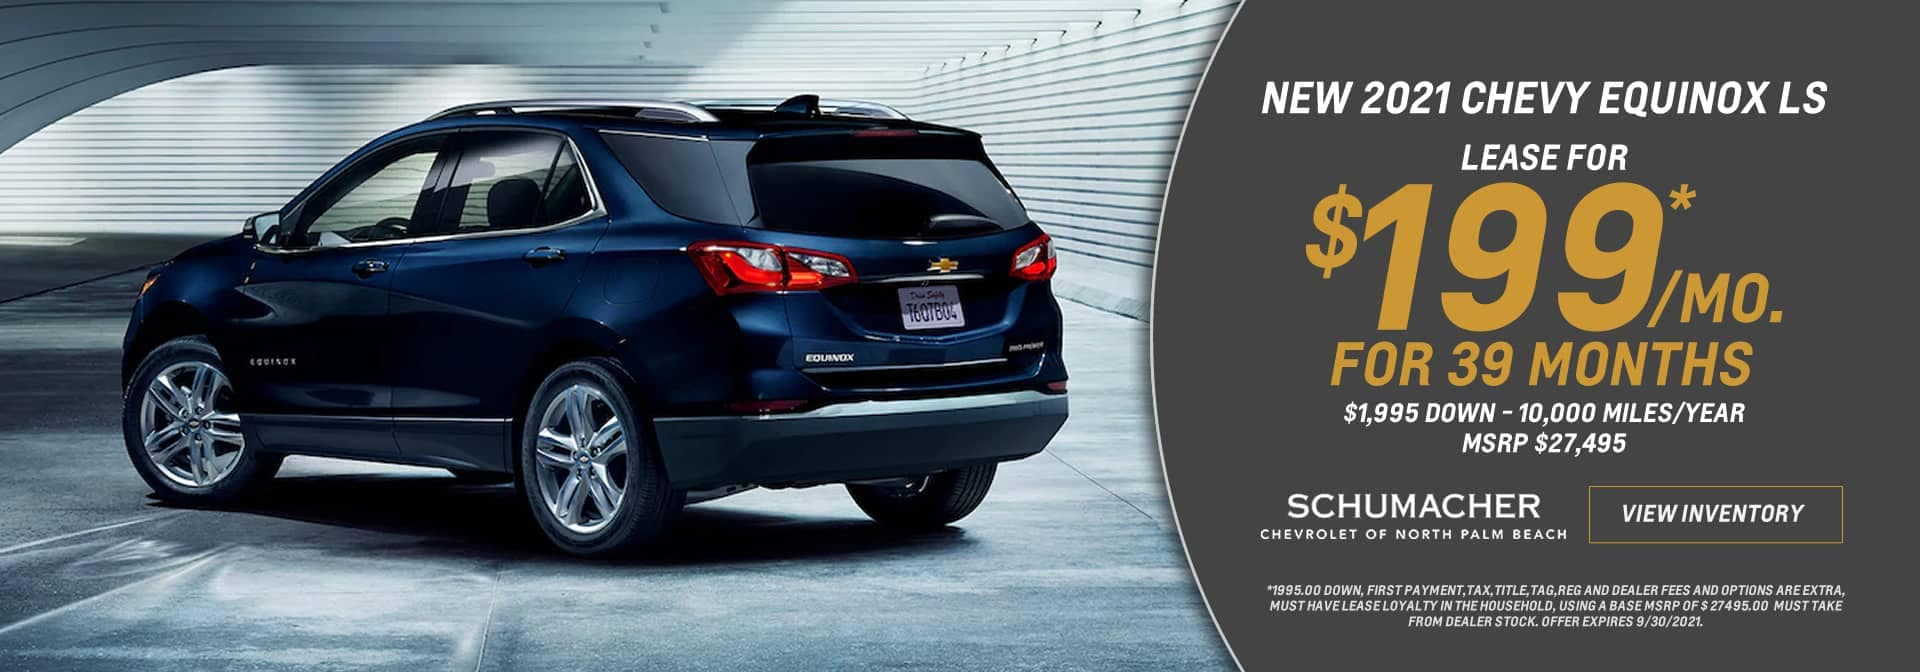 Chevrolet Equinox Lease Offer